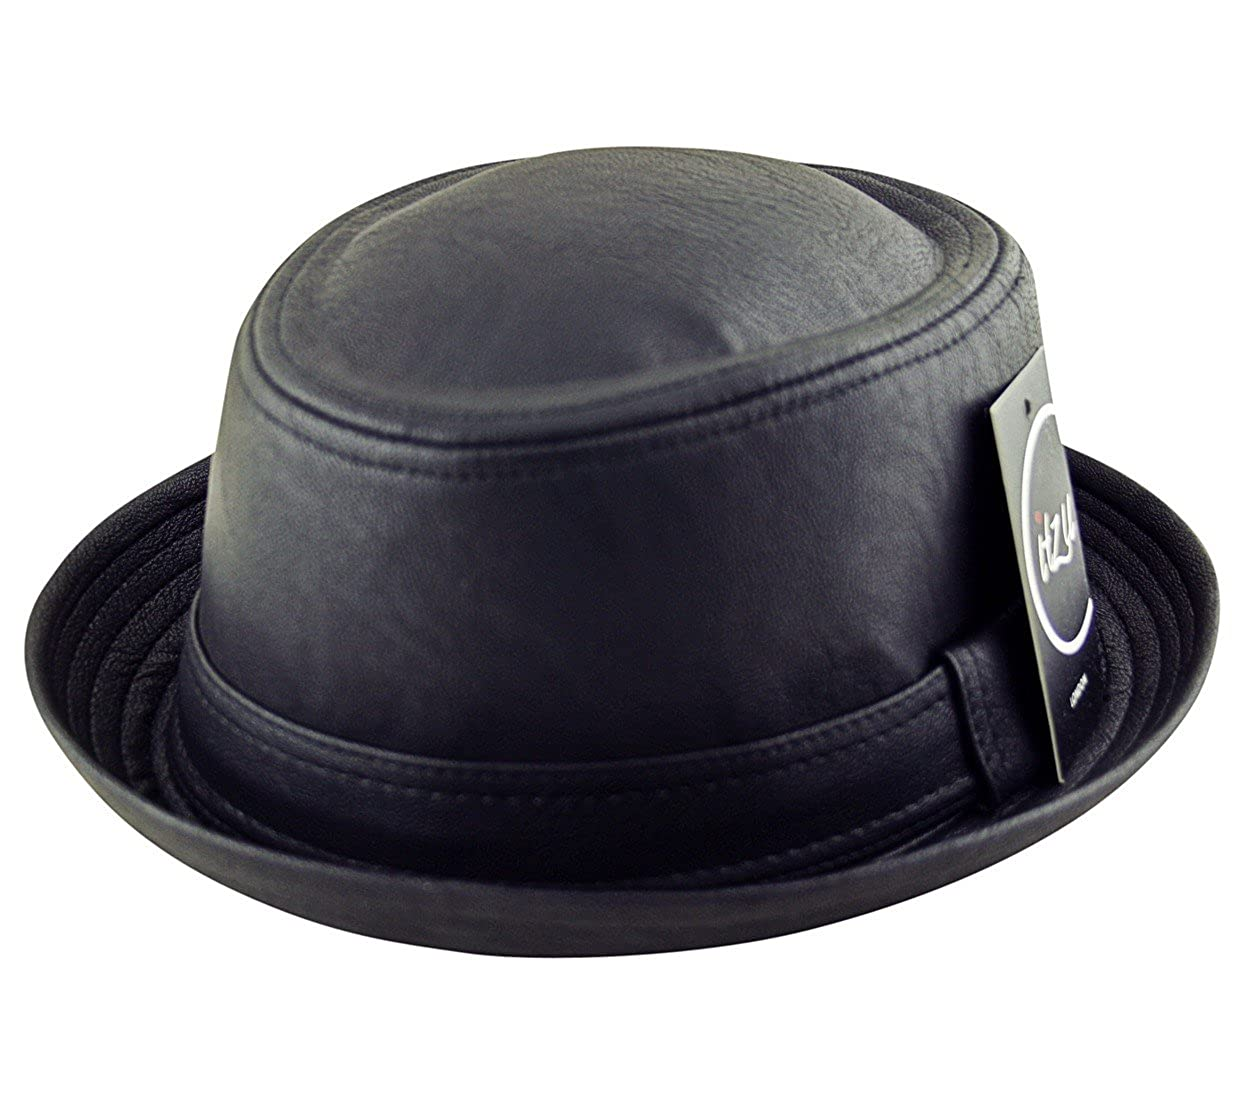 d292c593 Adult Pork Pie Trilby Fedora Textured Faux Leather Hat (Breaking Bad  Heisenberg Style) Matte Black: Amazon.co.uk: Clothing